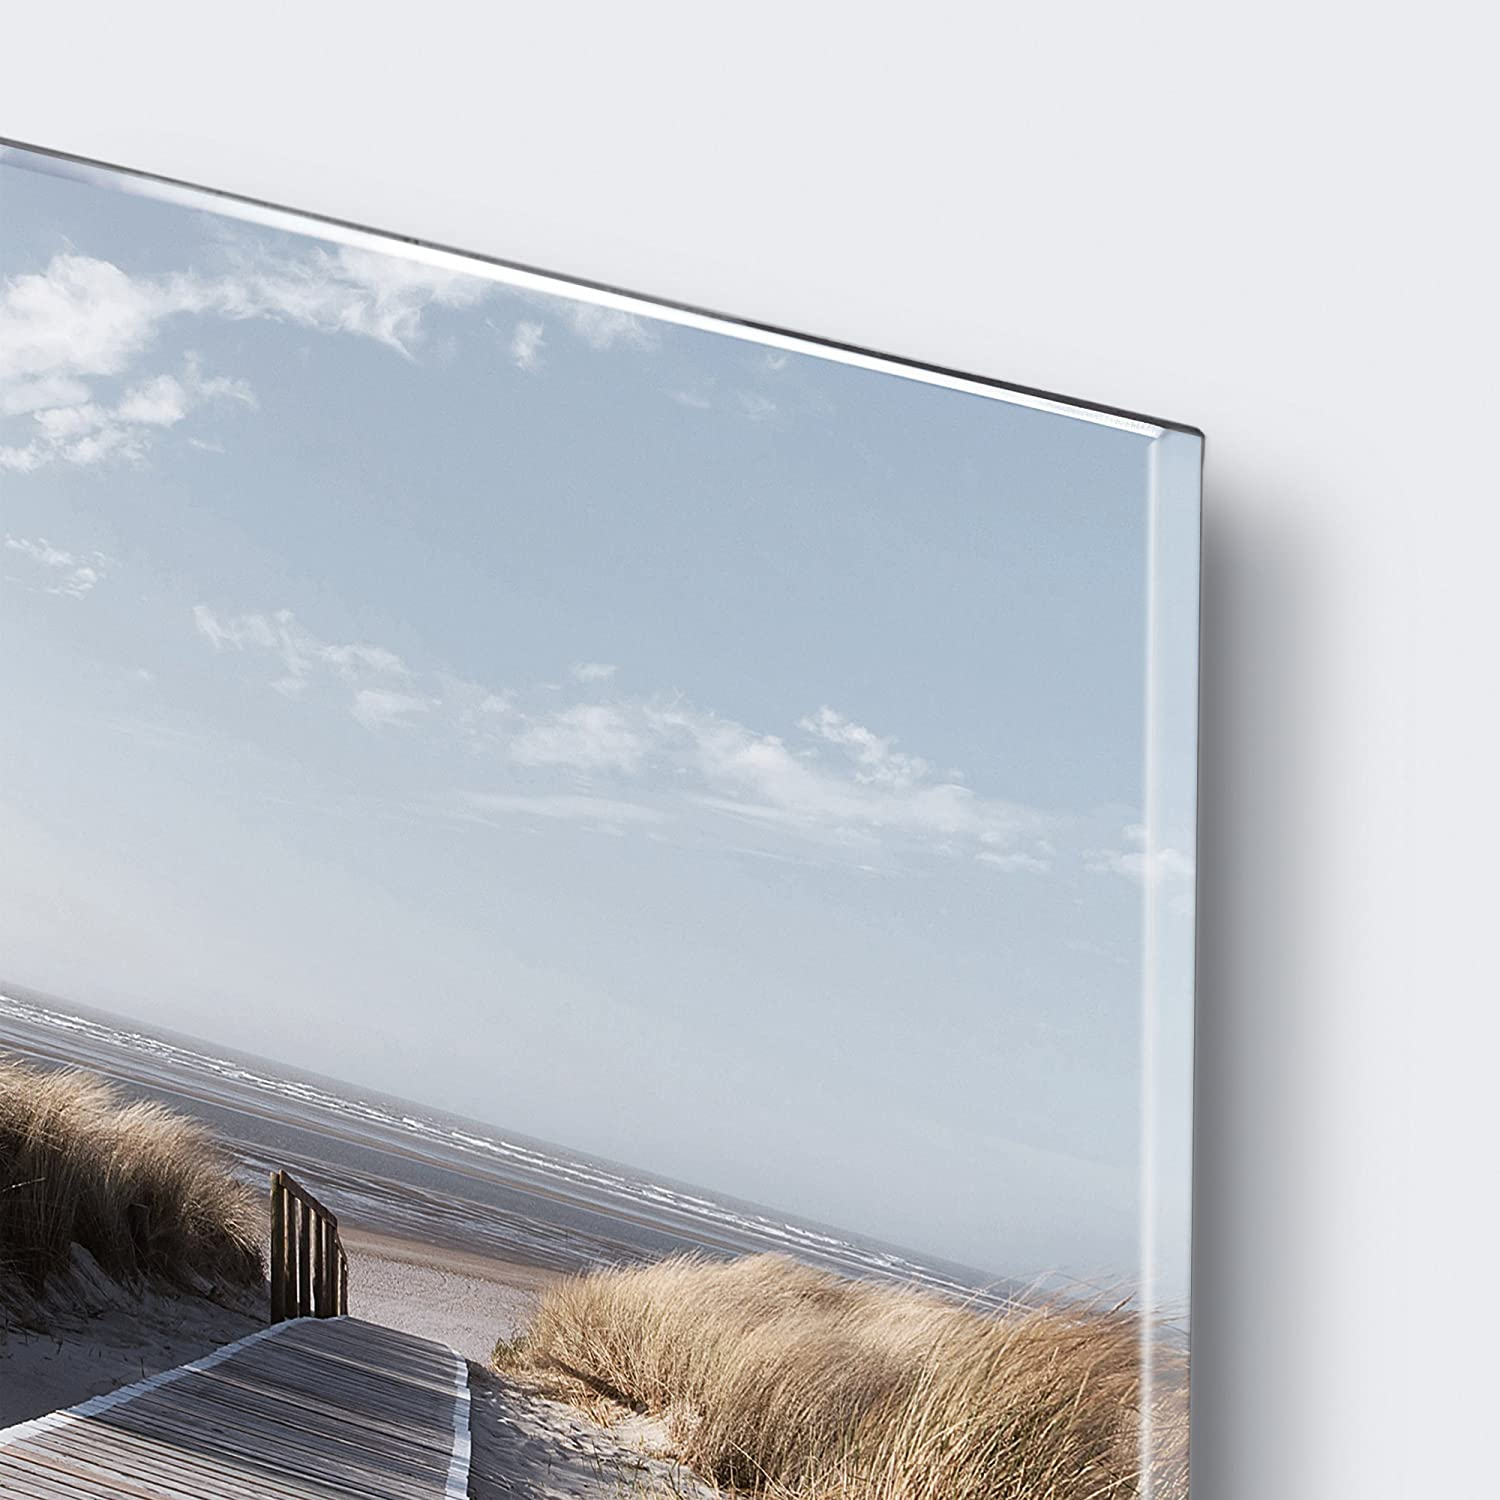 Eurographics Deco Glass DG-DT5284 Glass Picture 20 x 20 cm Morning ...